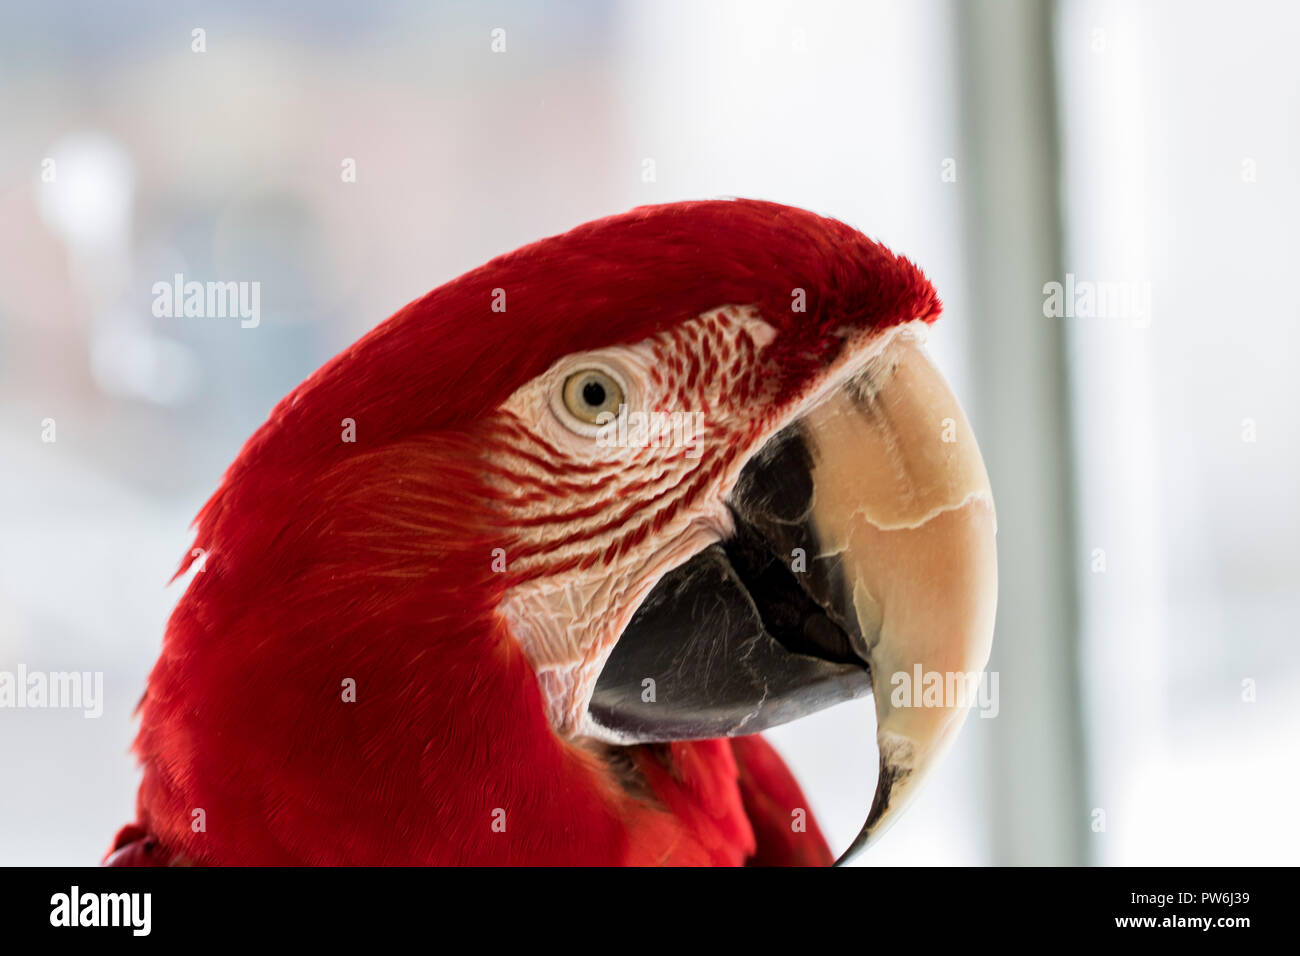 Red Parrot With Large Beak Close Up Portrait Of A Pet Parrot Eye Red Feathers And Big Beak Domesticated Macaw Stock Photo Alamy